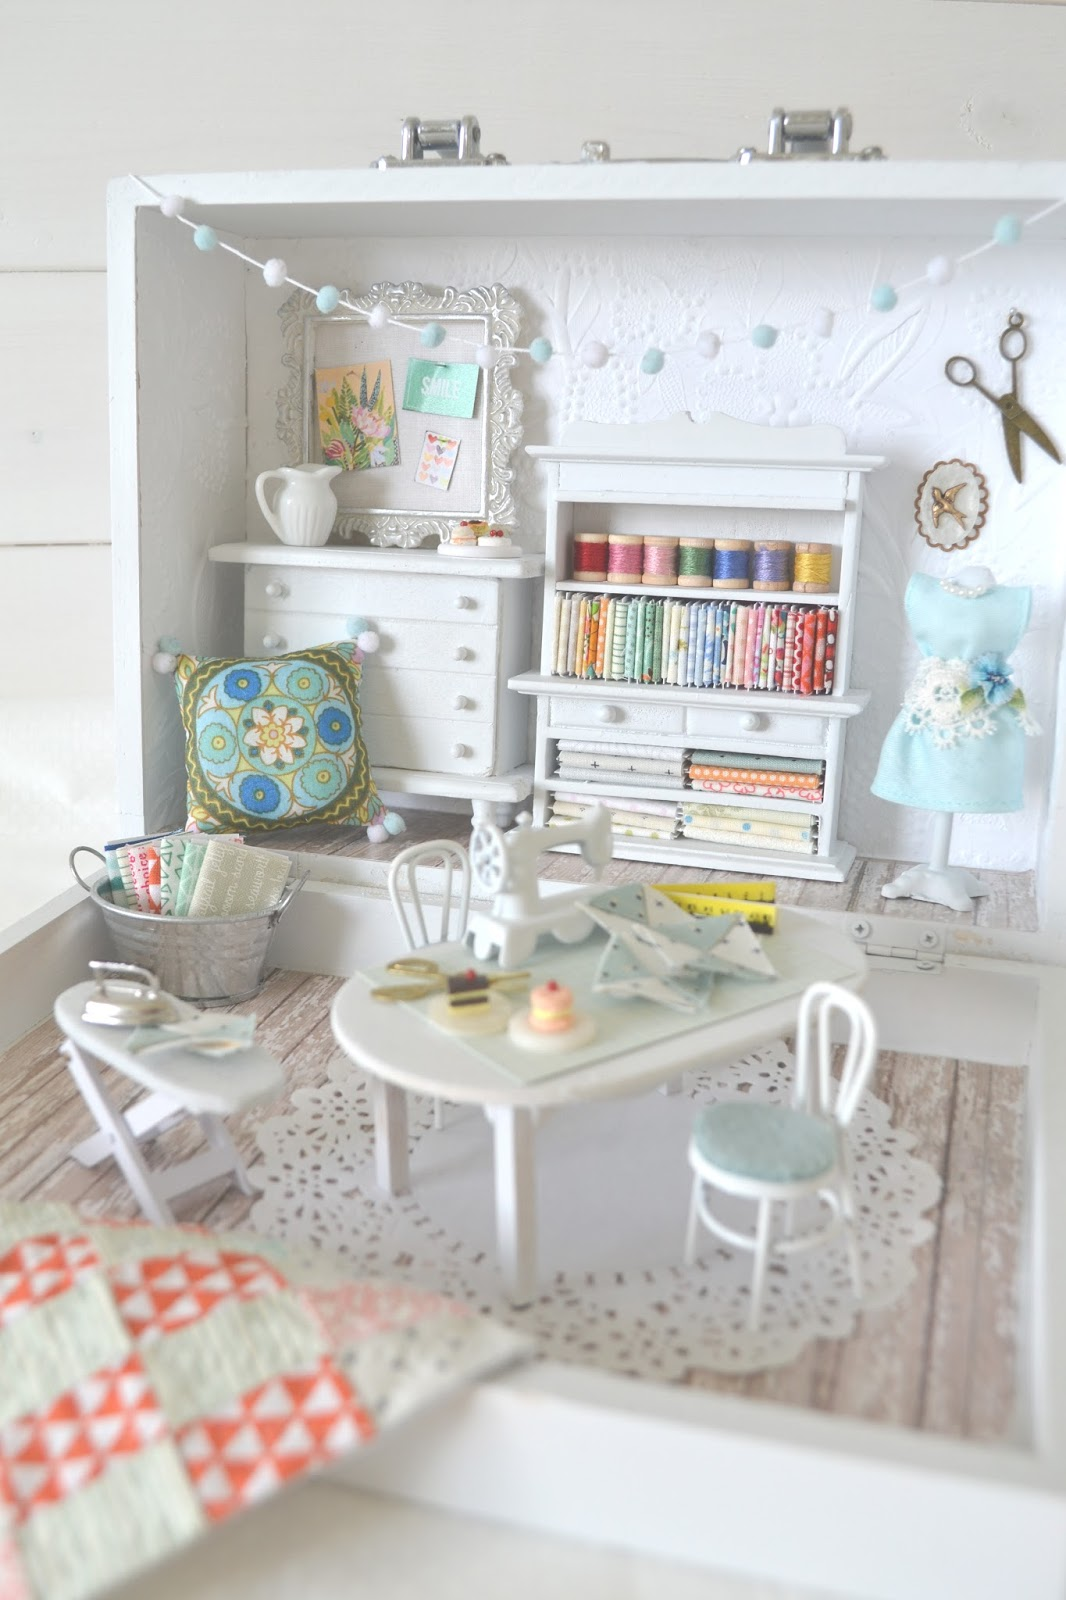 Sewing Room Designs: Big Reveal Of Small Sewing Room!